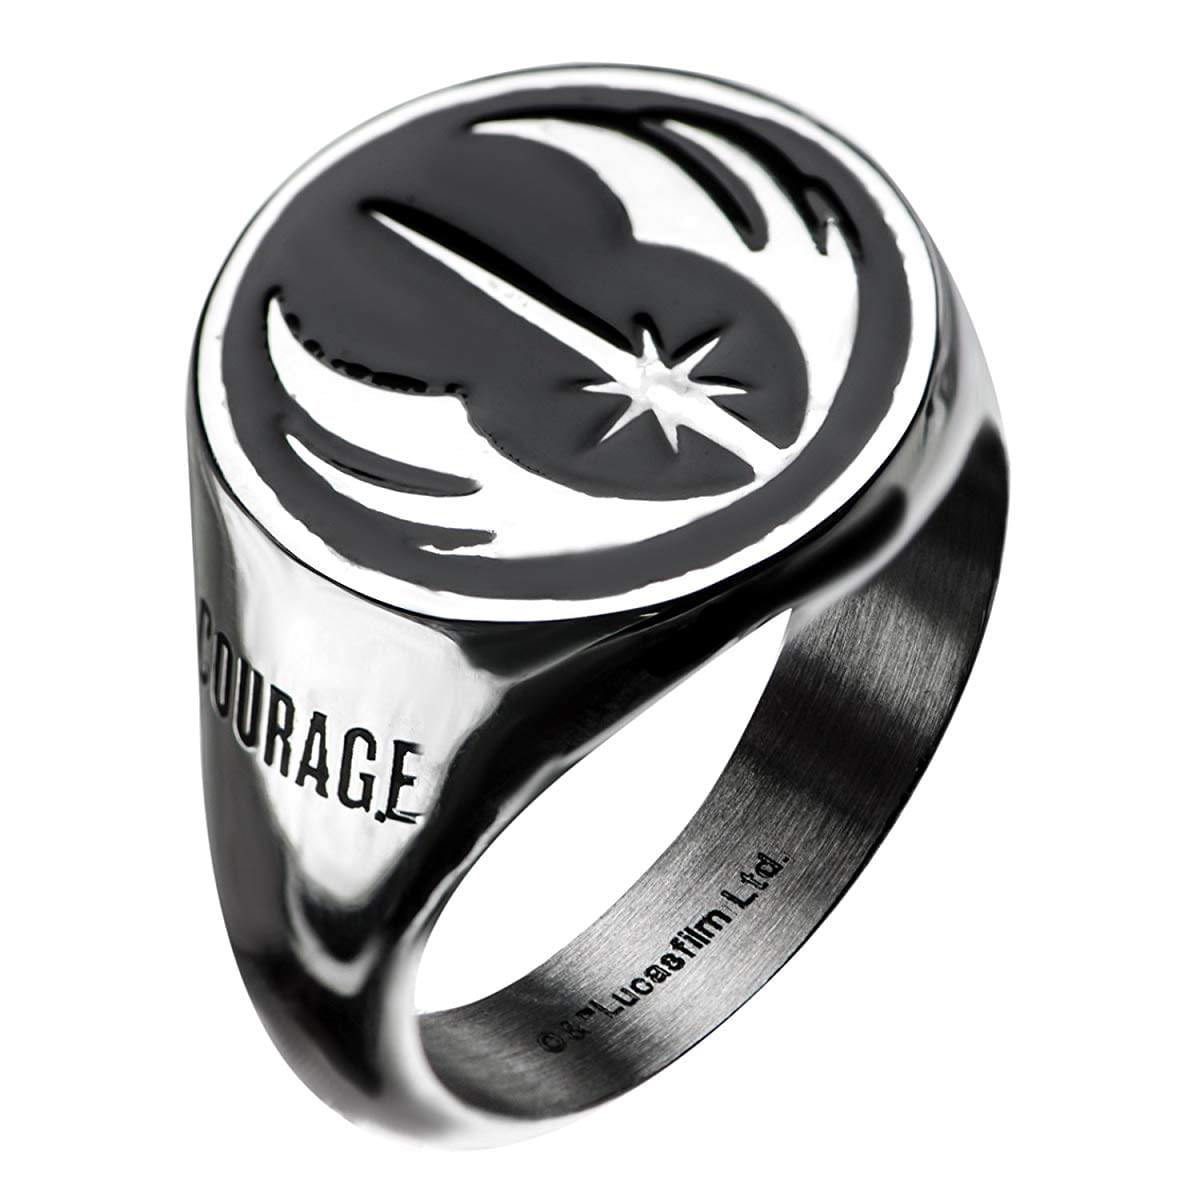 Star Wars Jewelry Men's Stainless Steel Jedi Signet Ring (Silver/Black) - Size 10